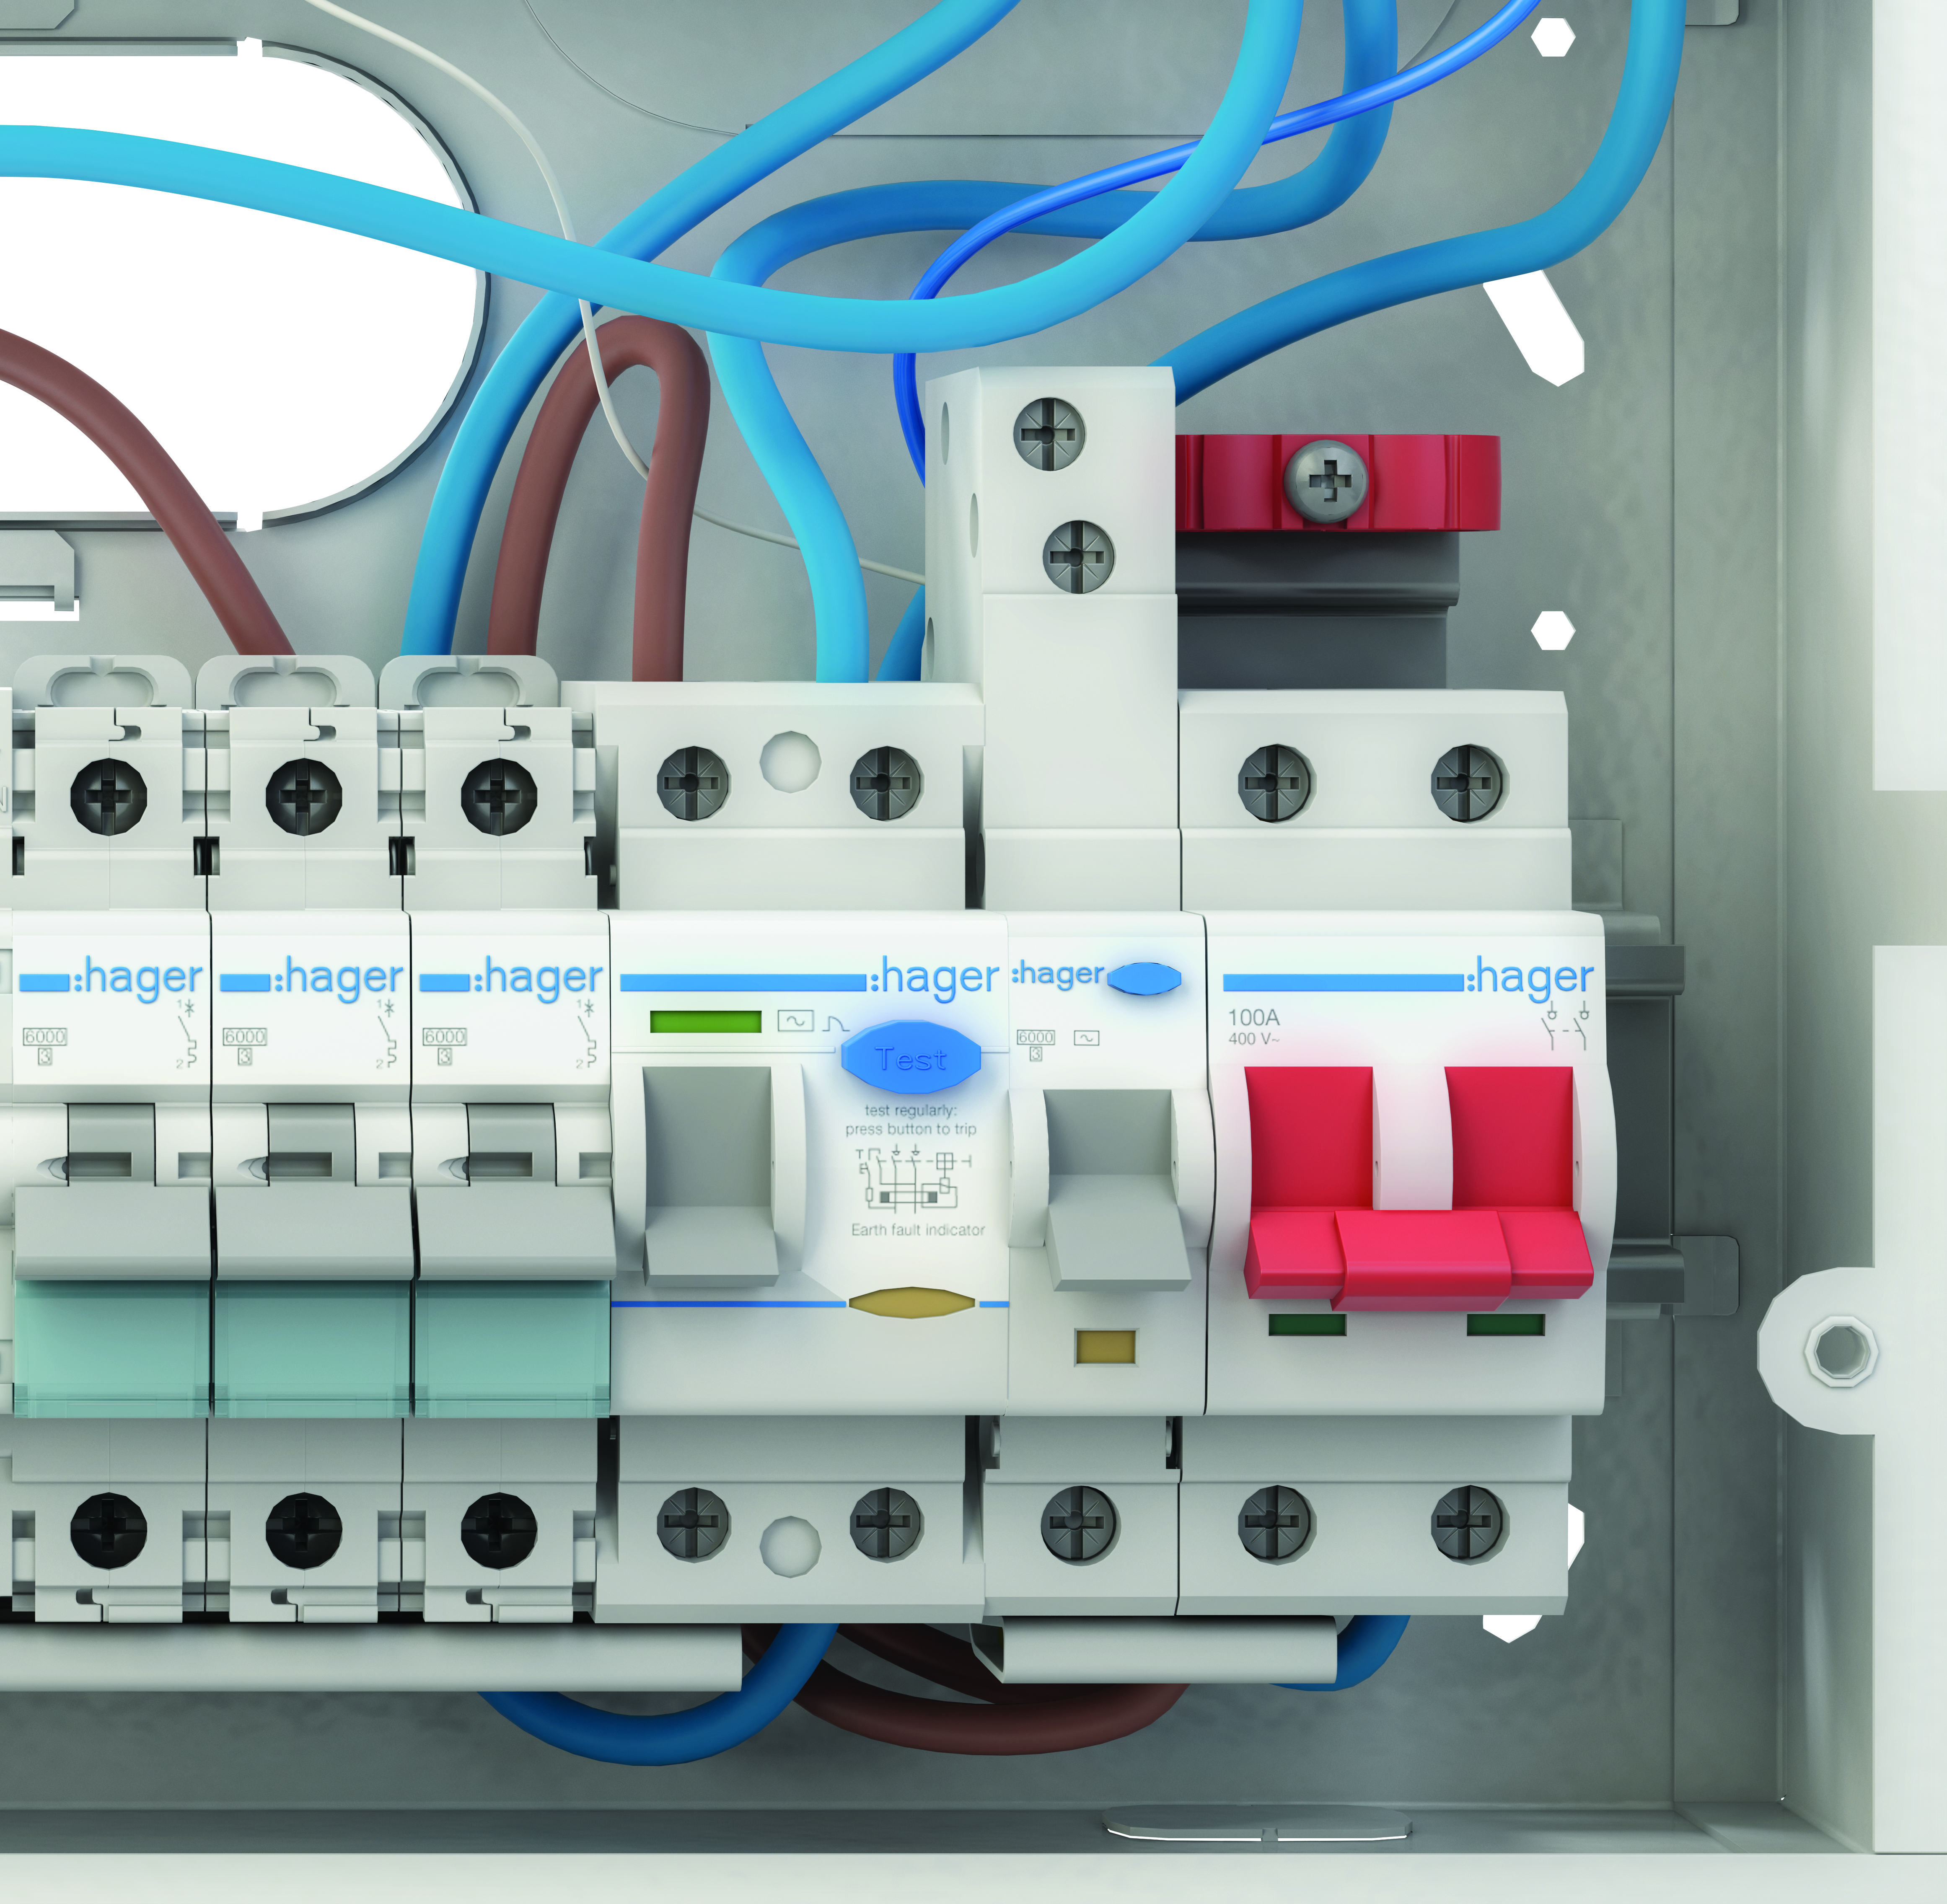 Swell Wylex Old Style Fuse Box Wiring Library Wiring Cloud Overrenstrafr09Org